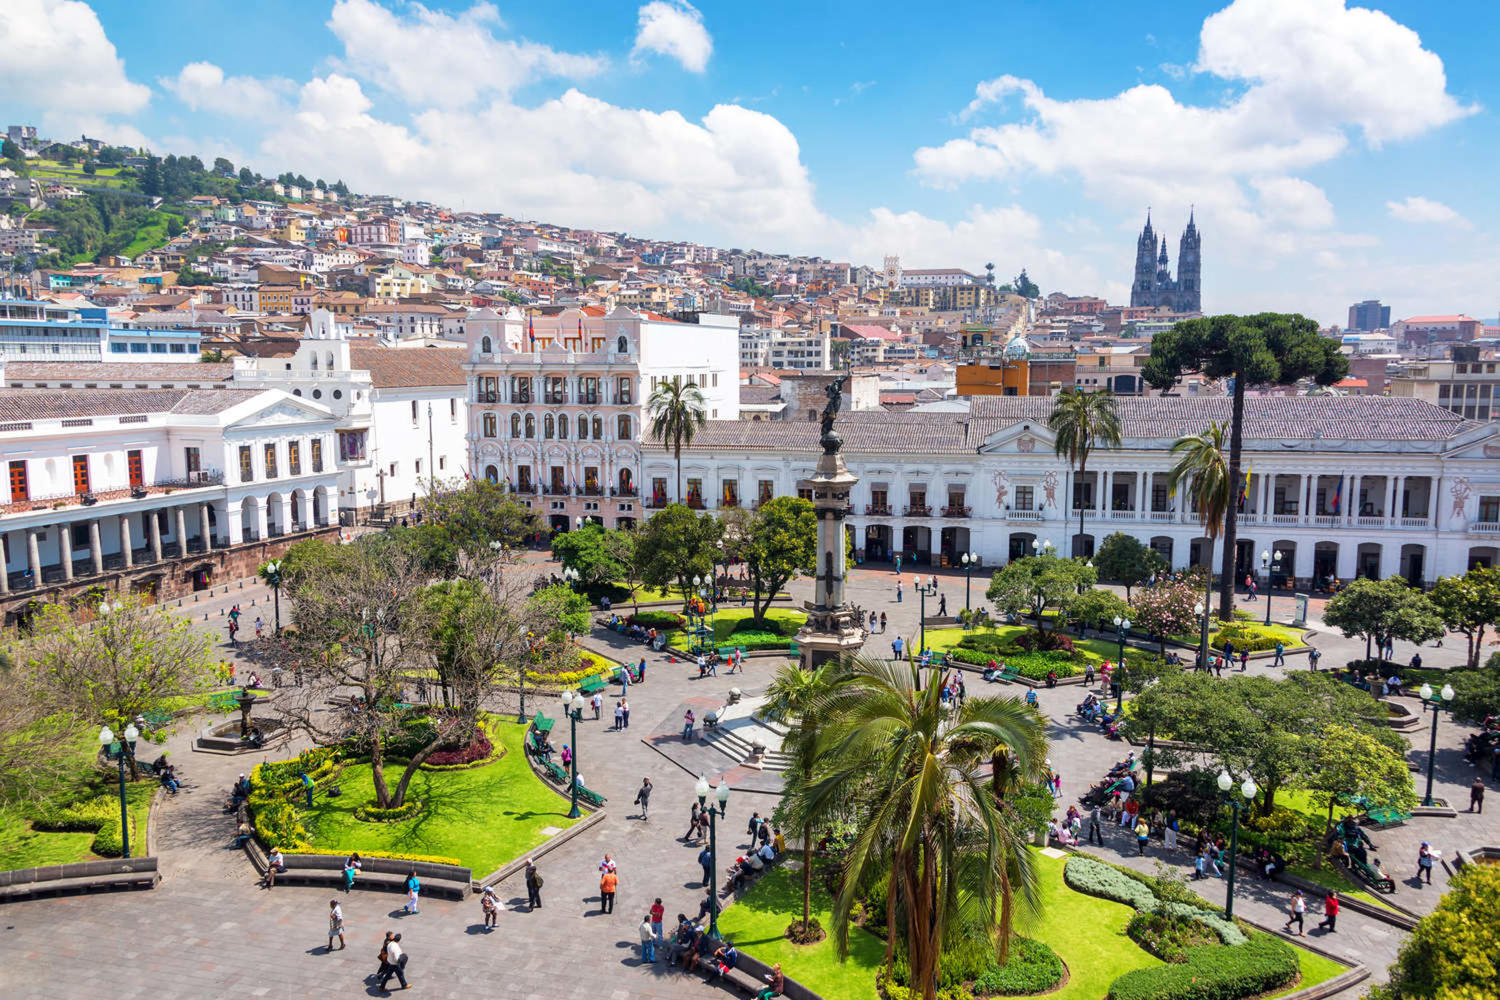 Activity in Plaza Grande in the colonial center of Quito